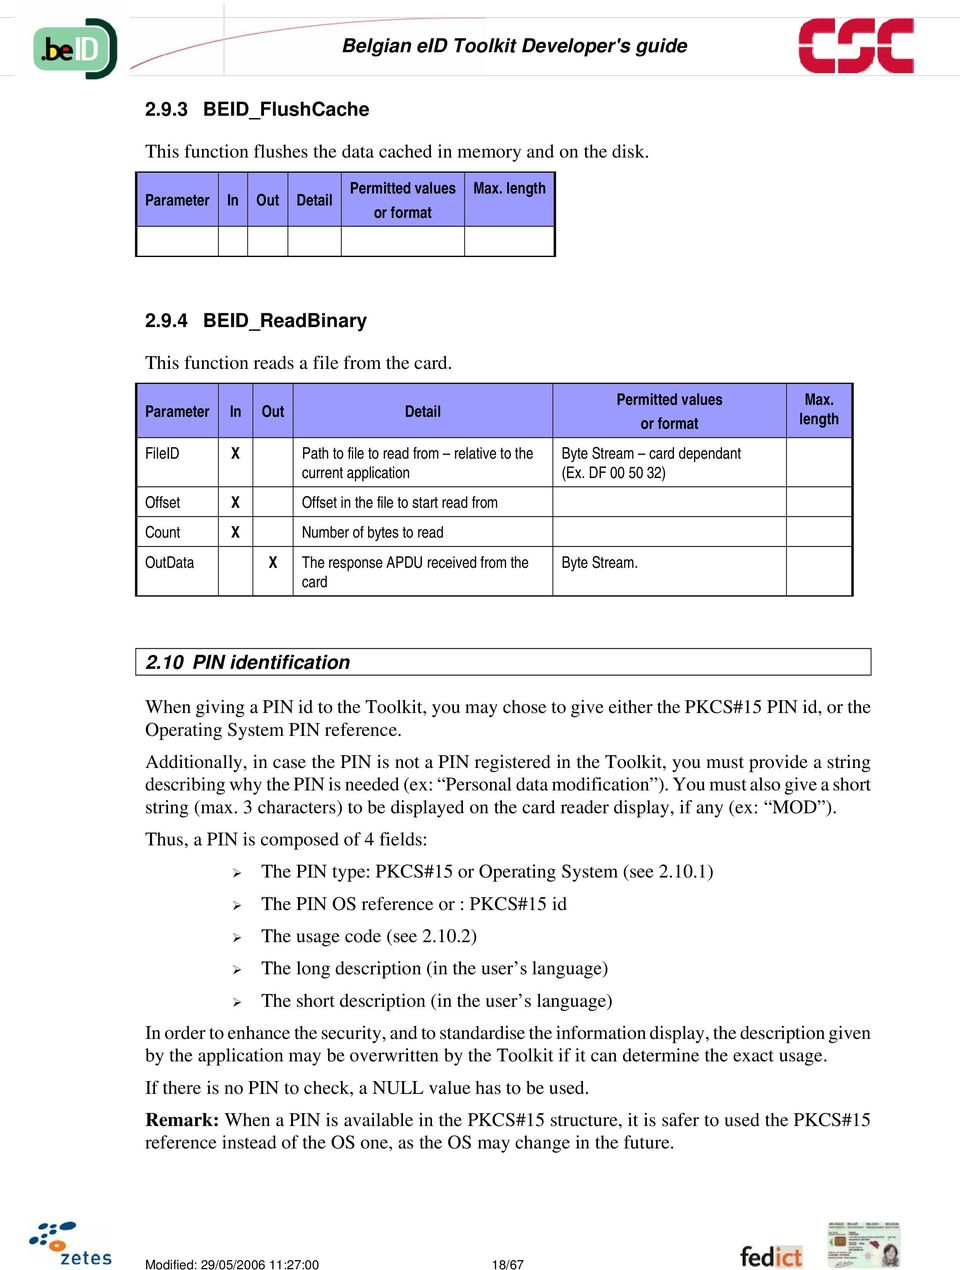 Belgian Eid Toolkit Developers Guide Pdf Plug Connector And Pinout Diagram For Blackberry Pearl 8100 Apdu Received From The Card Permitted Values Or Format Byte Stream Dependant Ex